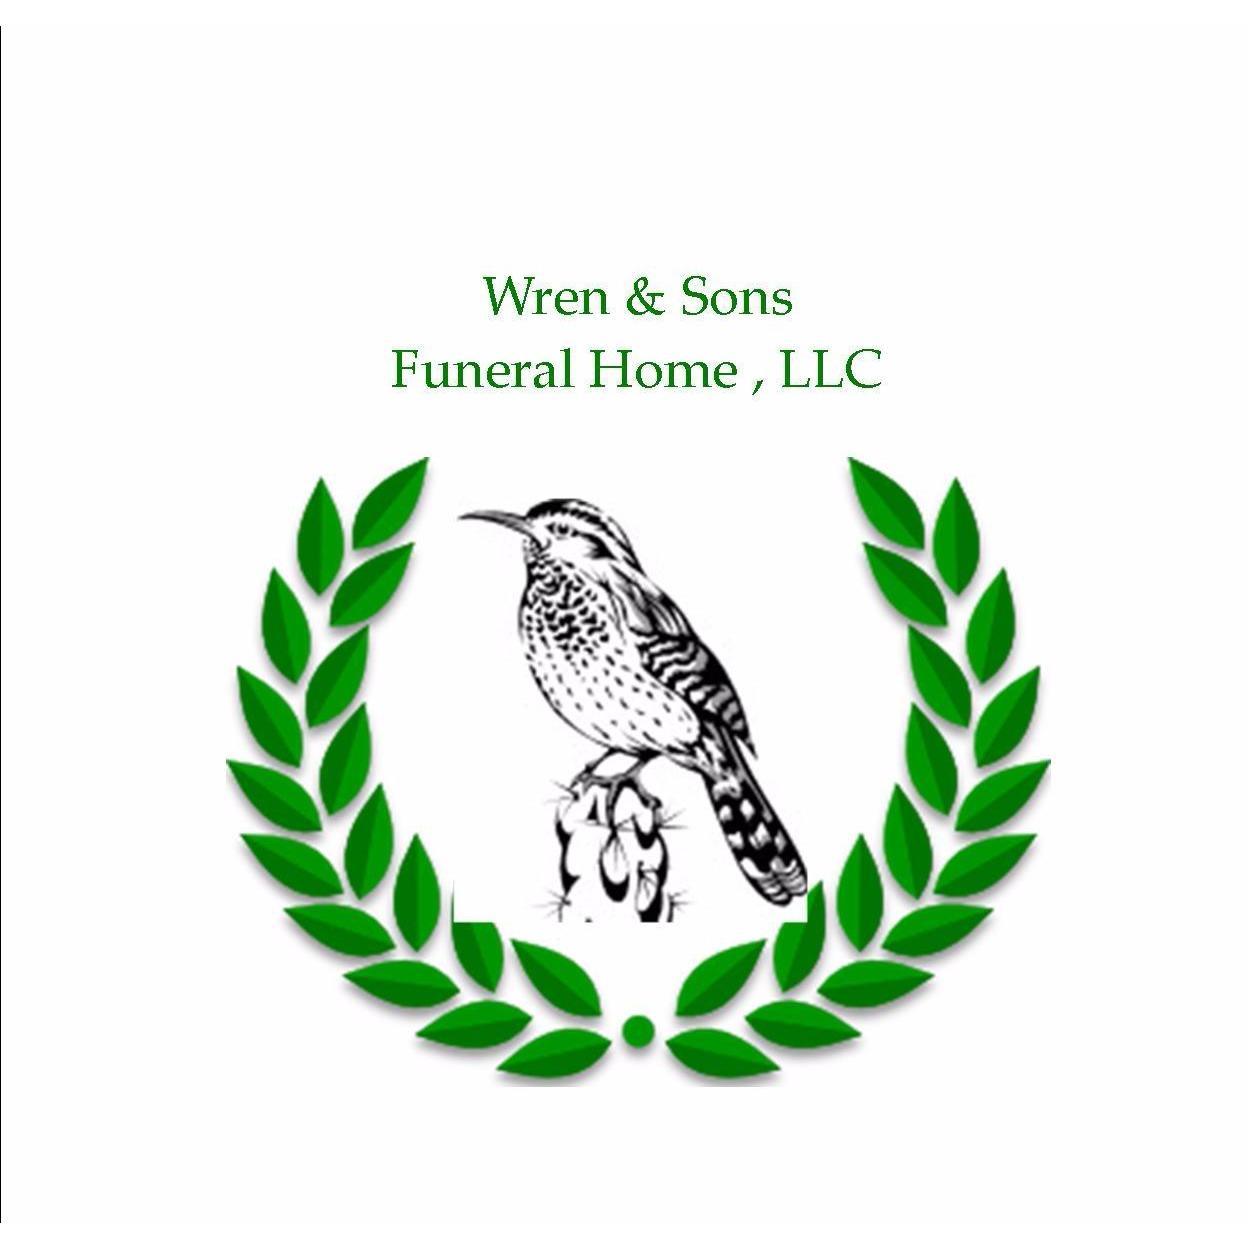 Wren and Sons Funeral Home